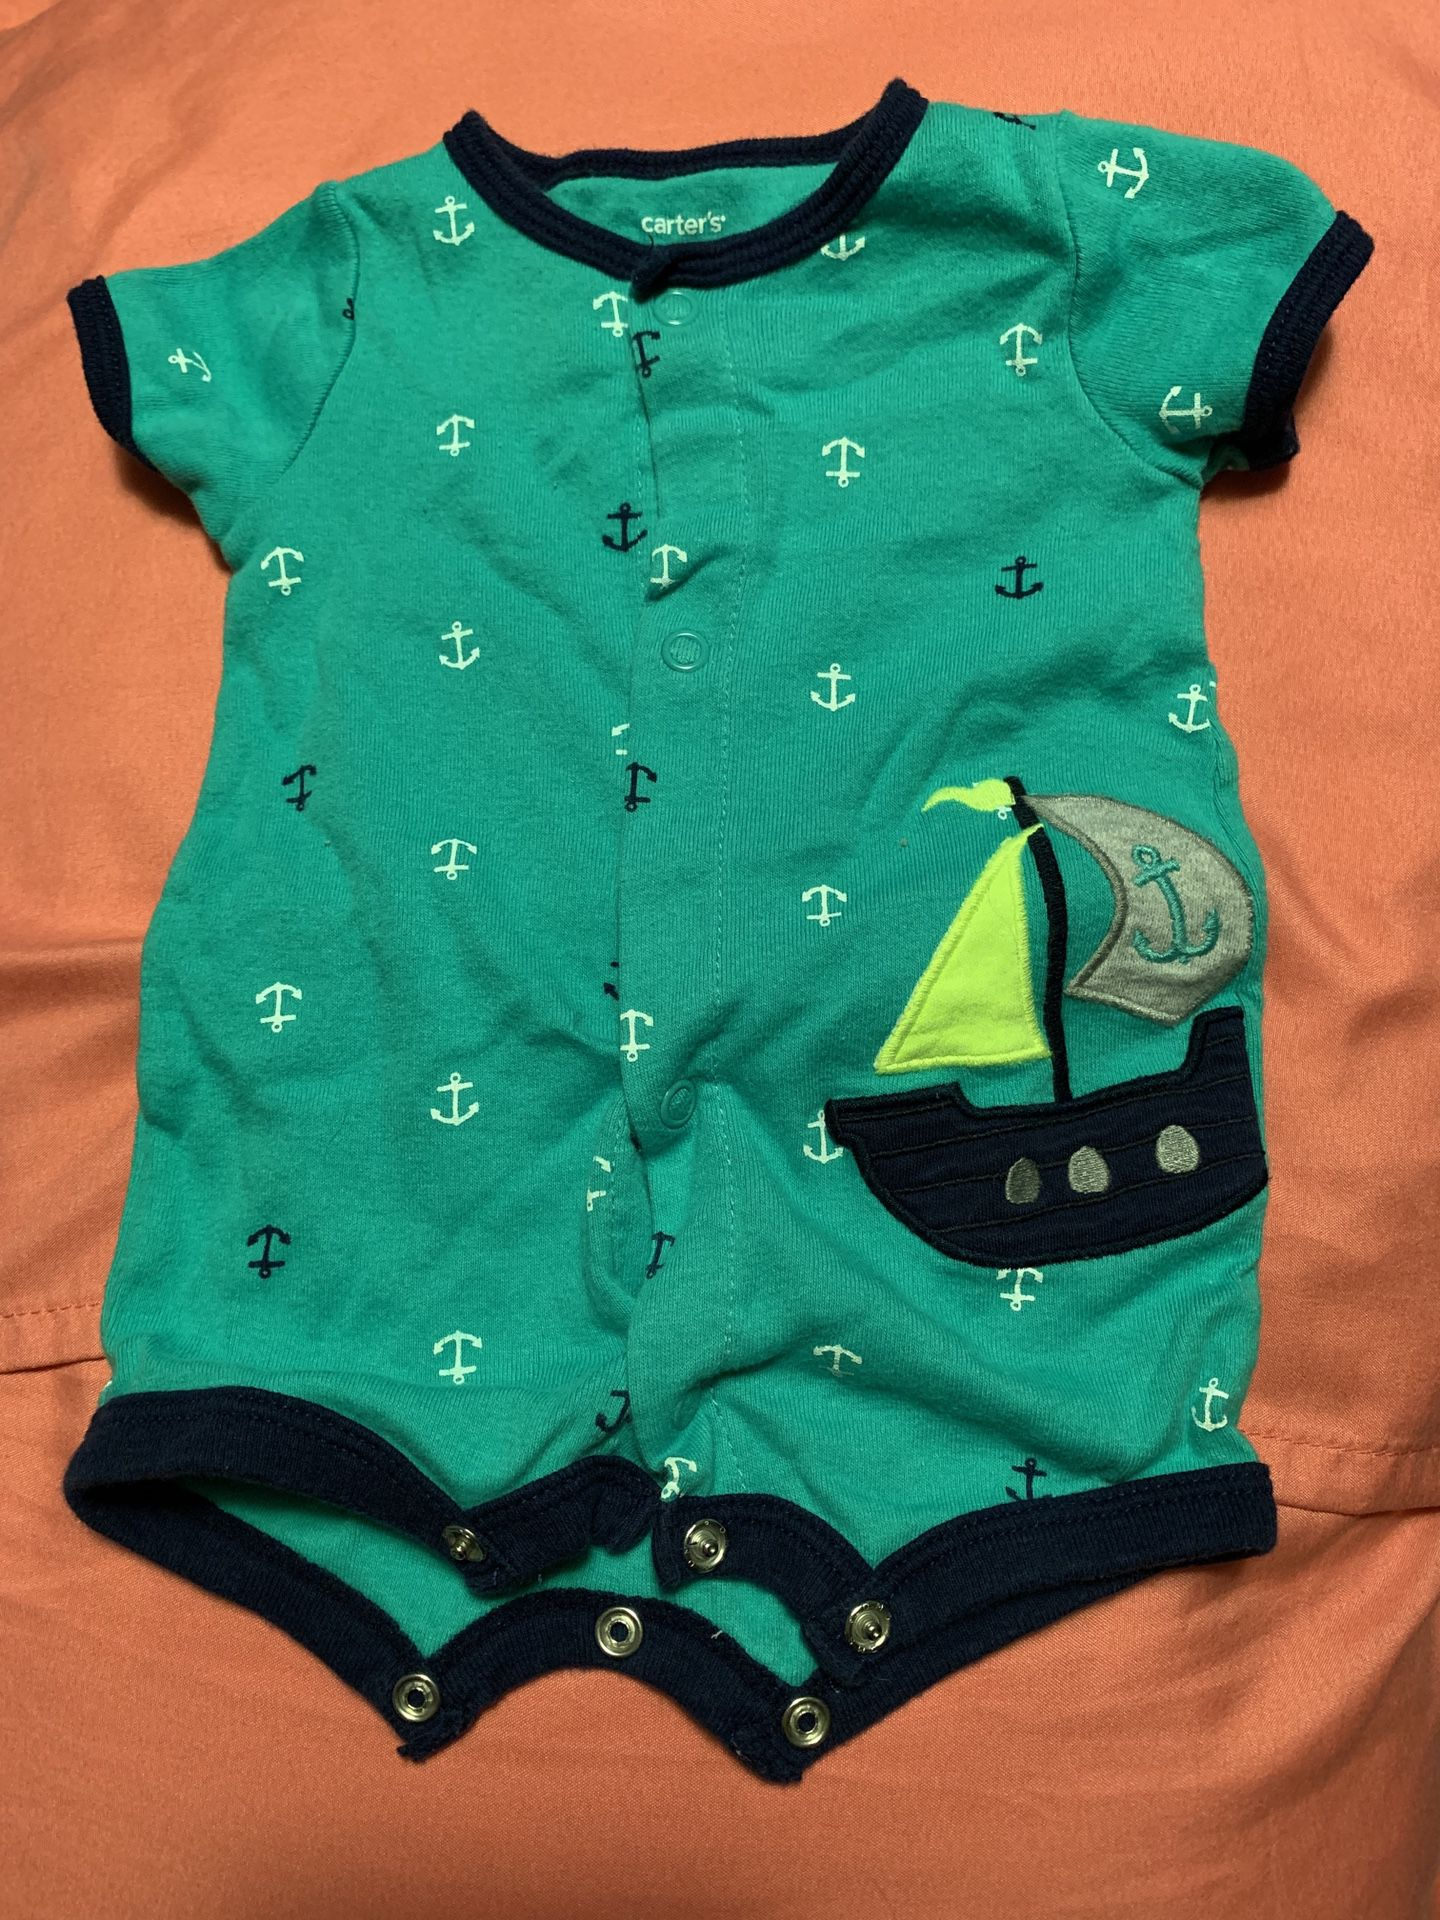 New born outfit